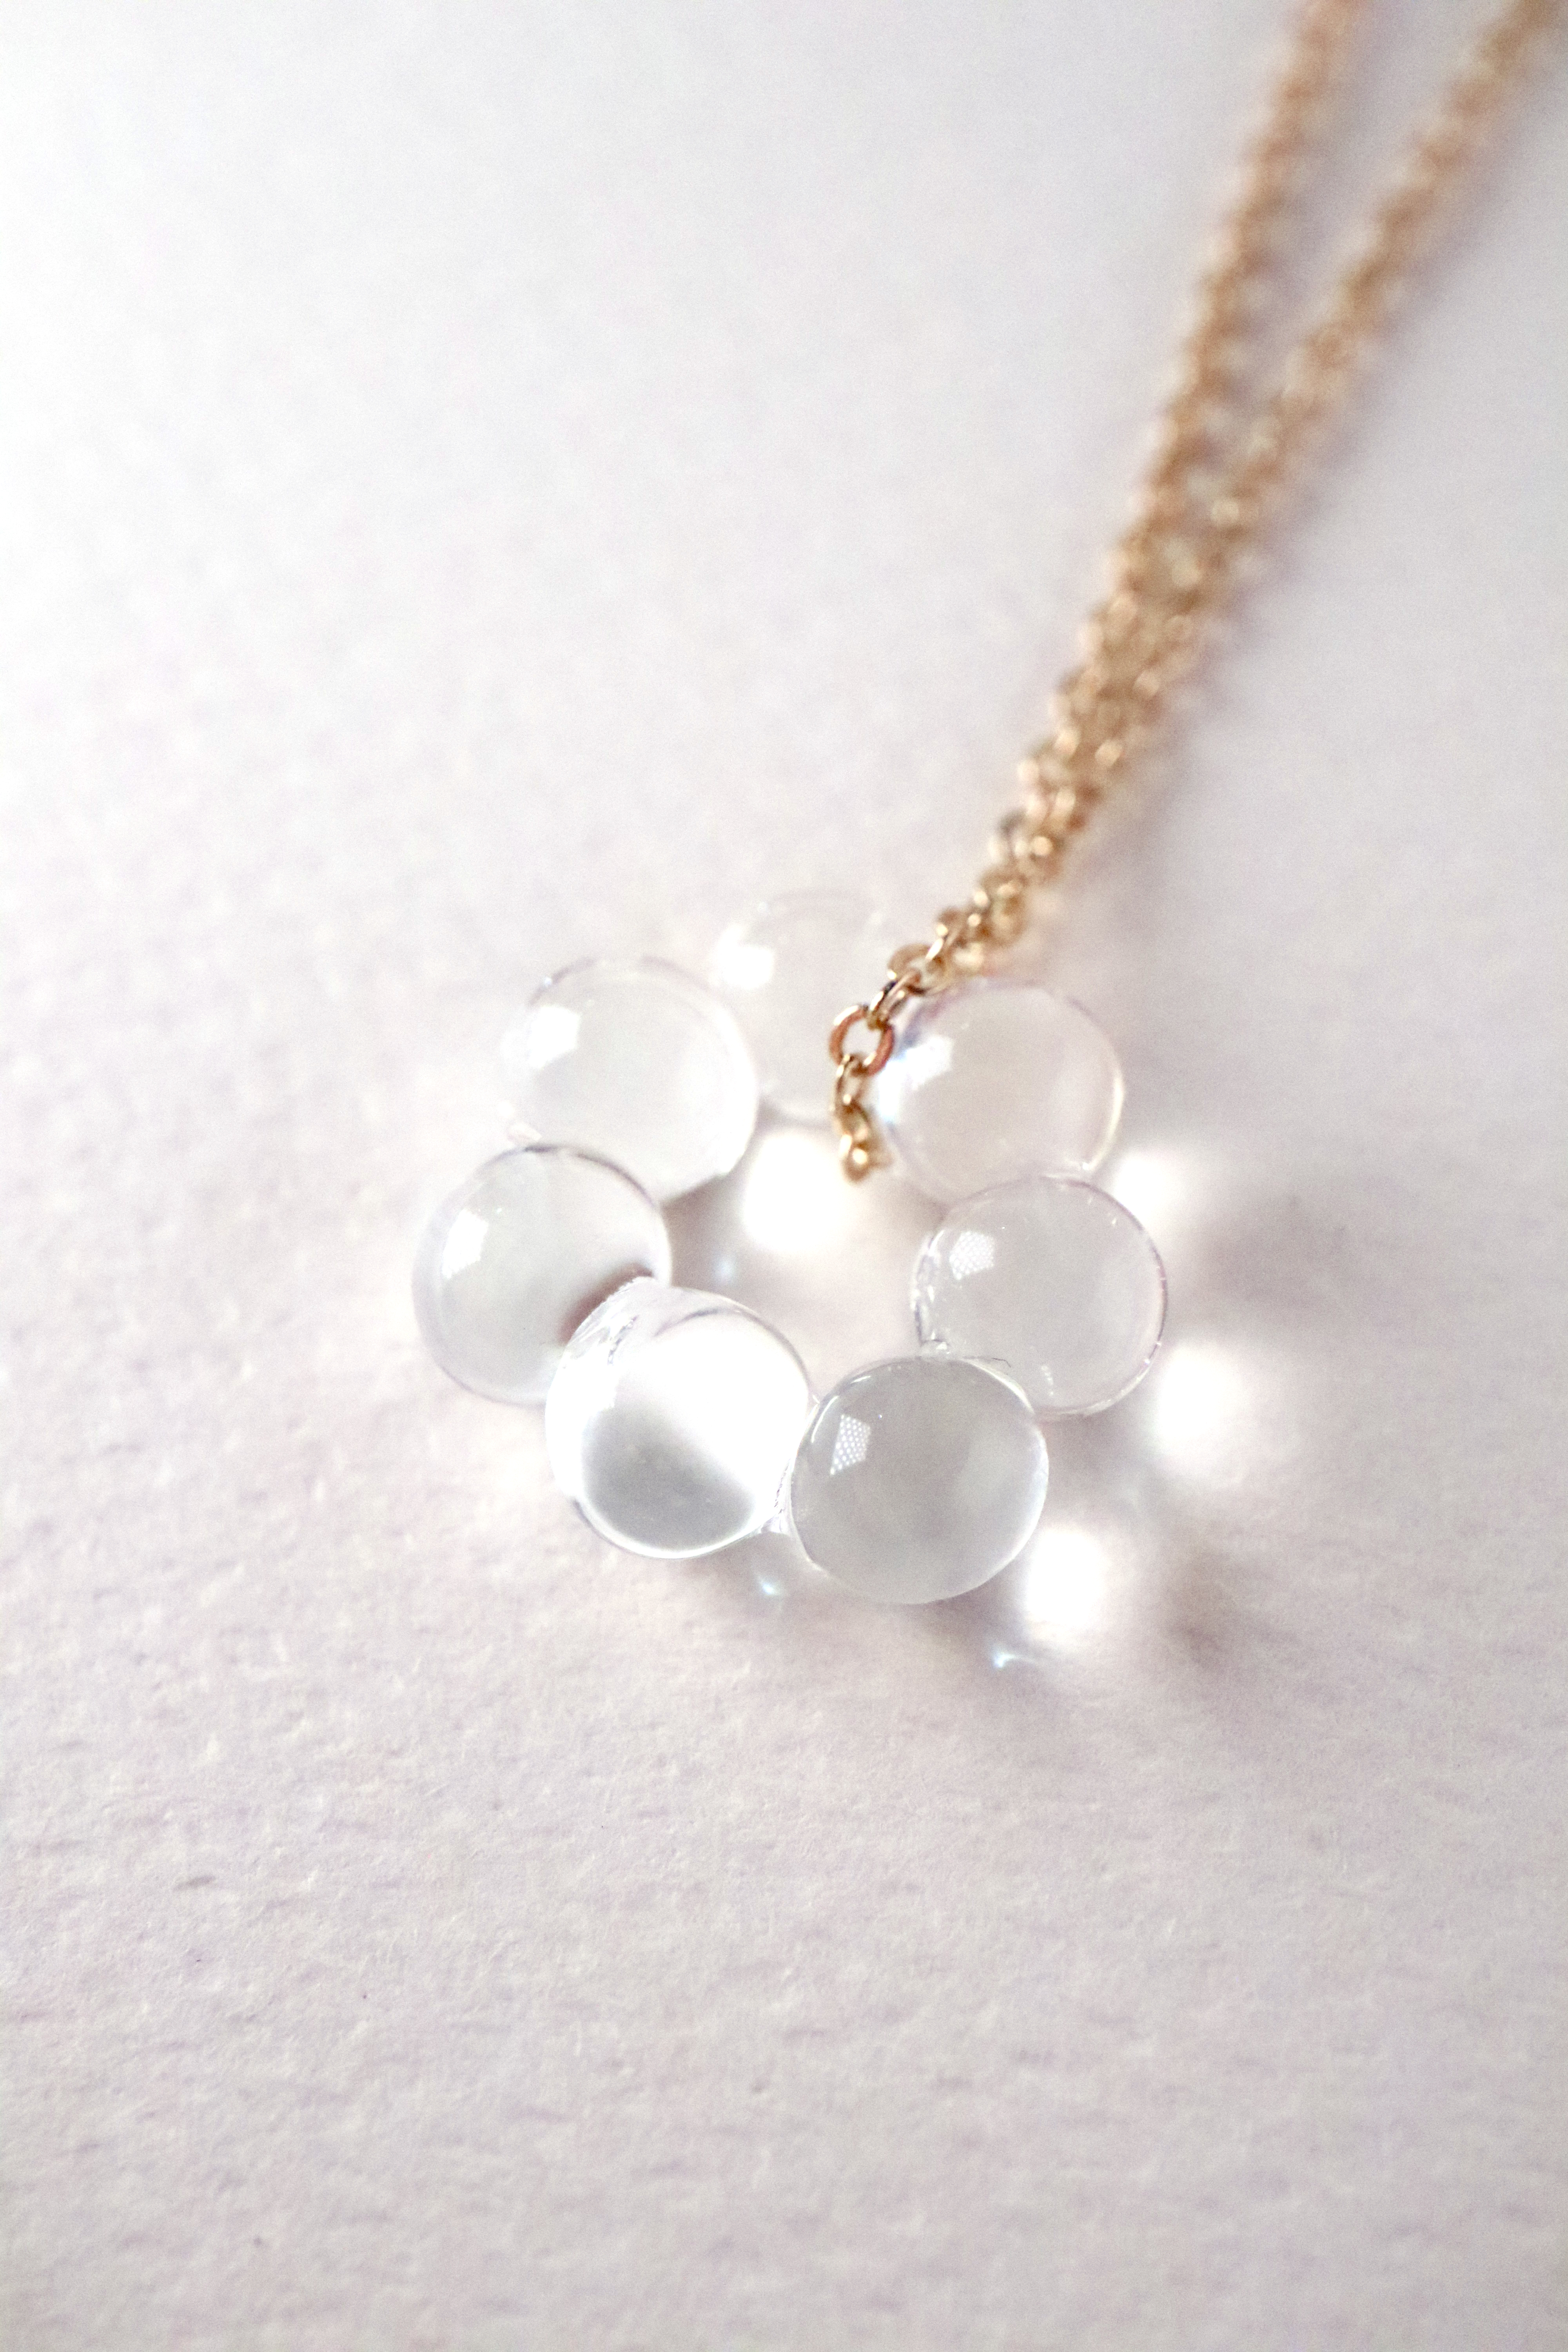 SETTE necklace